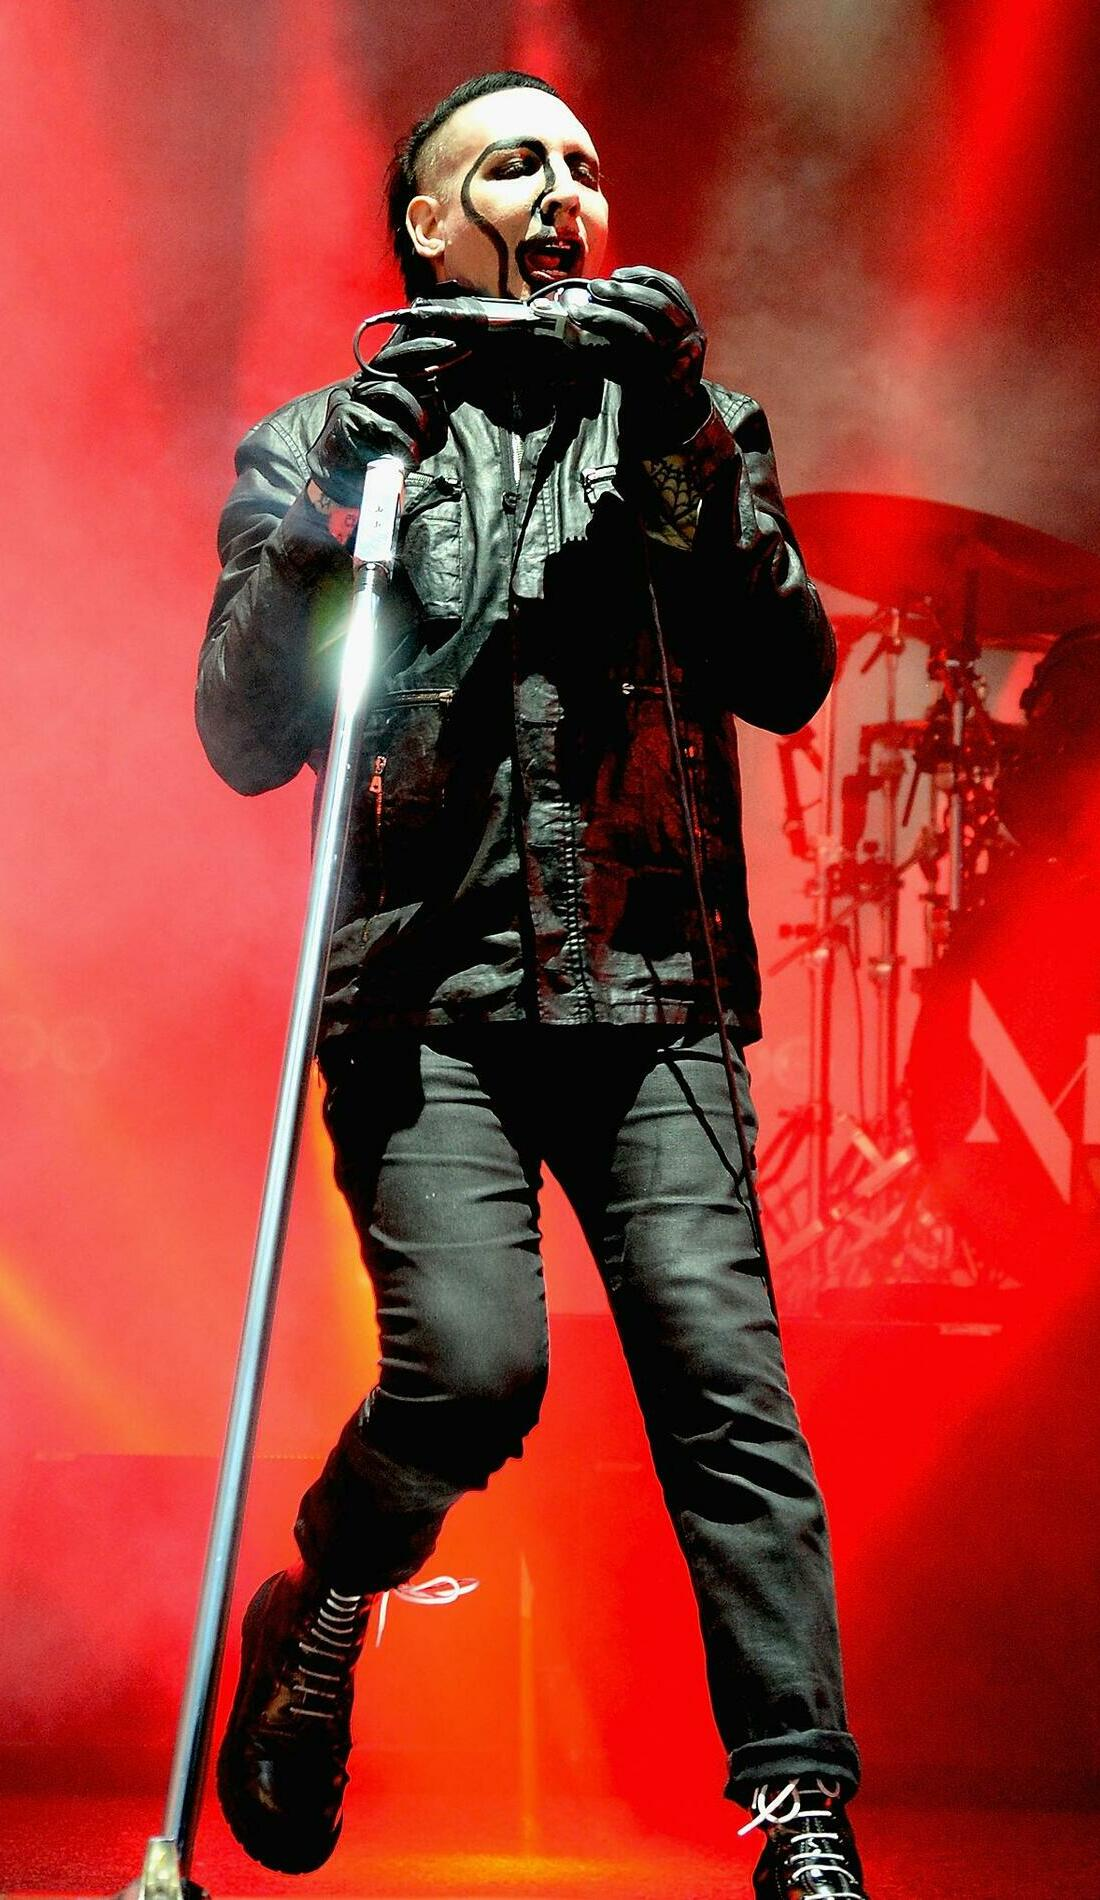 A Marilyn Manson live event